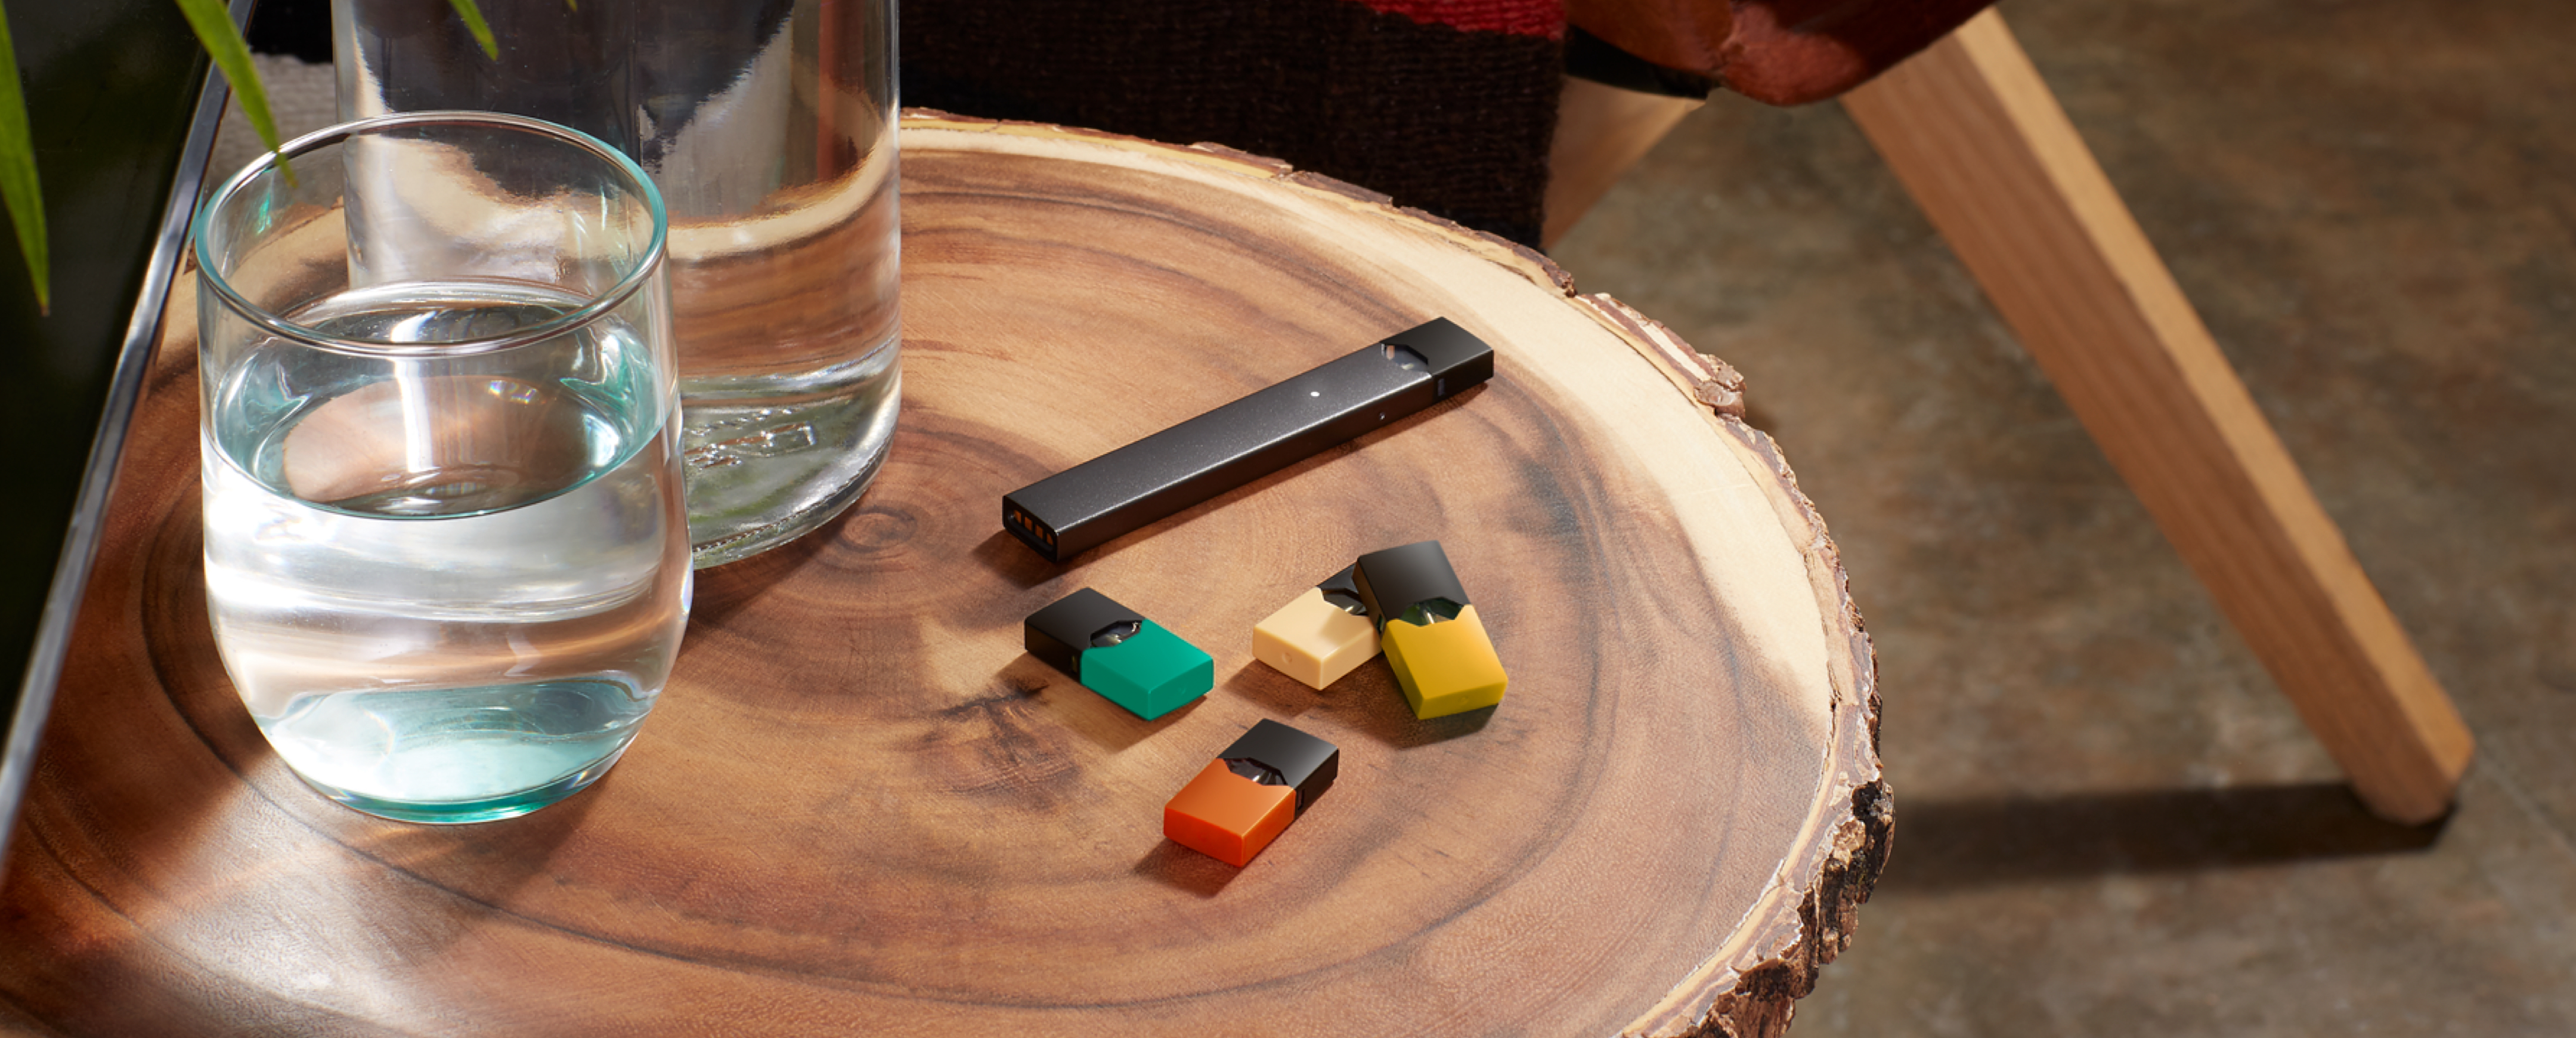 JUULpods on a table | JUUL